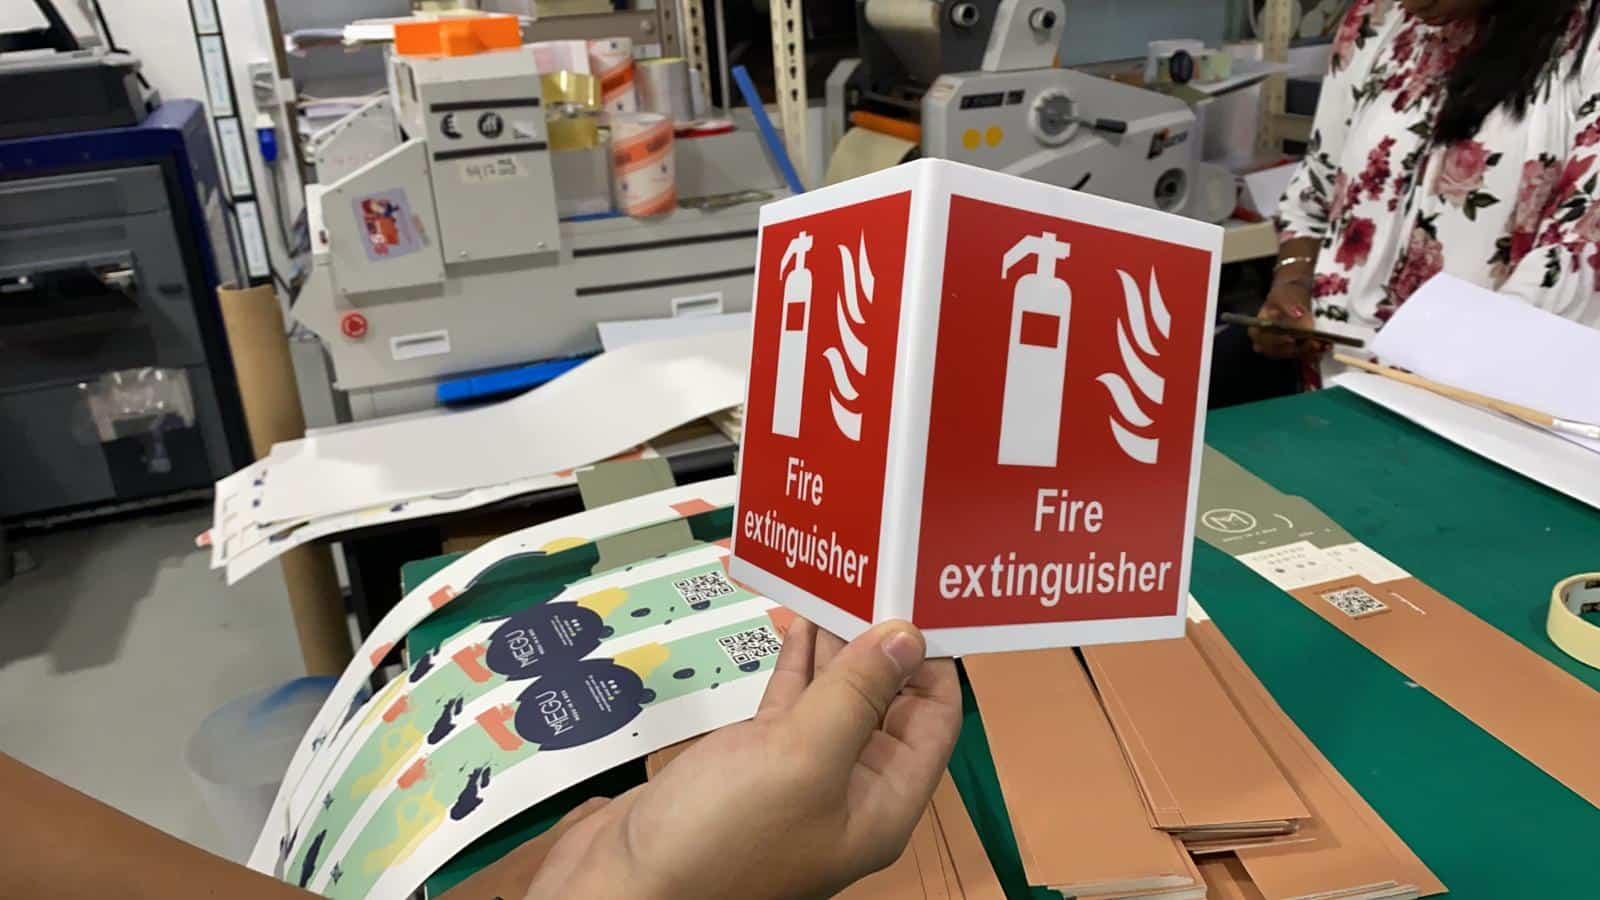 2 face triangle fire extinguisher signage